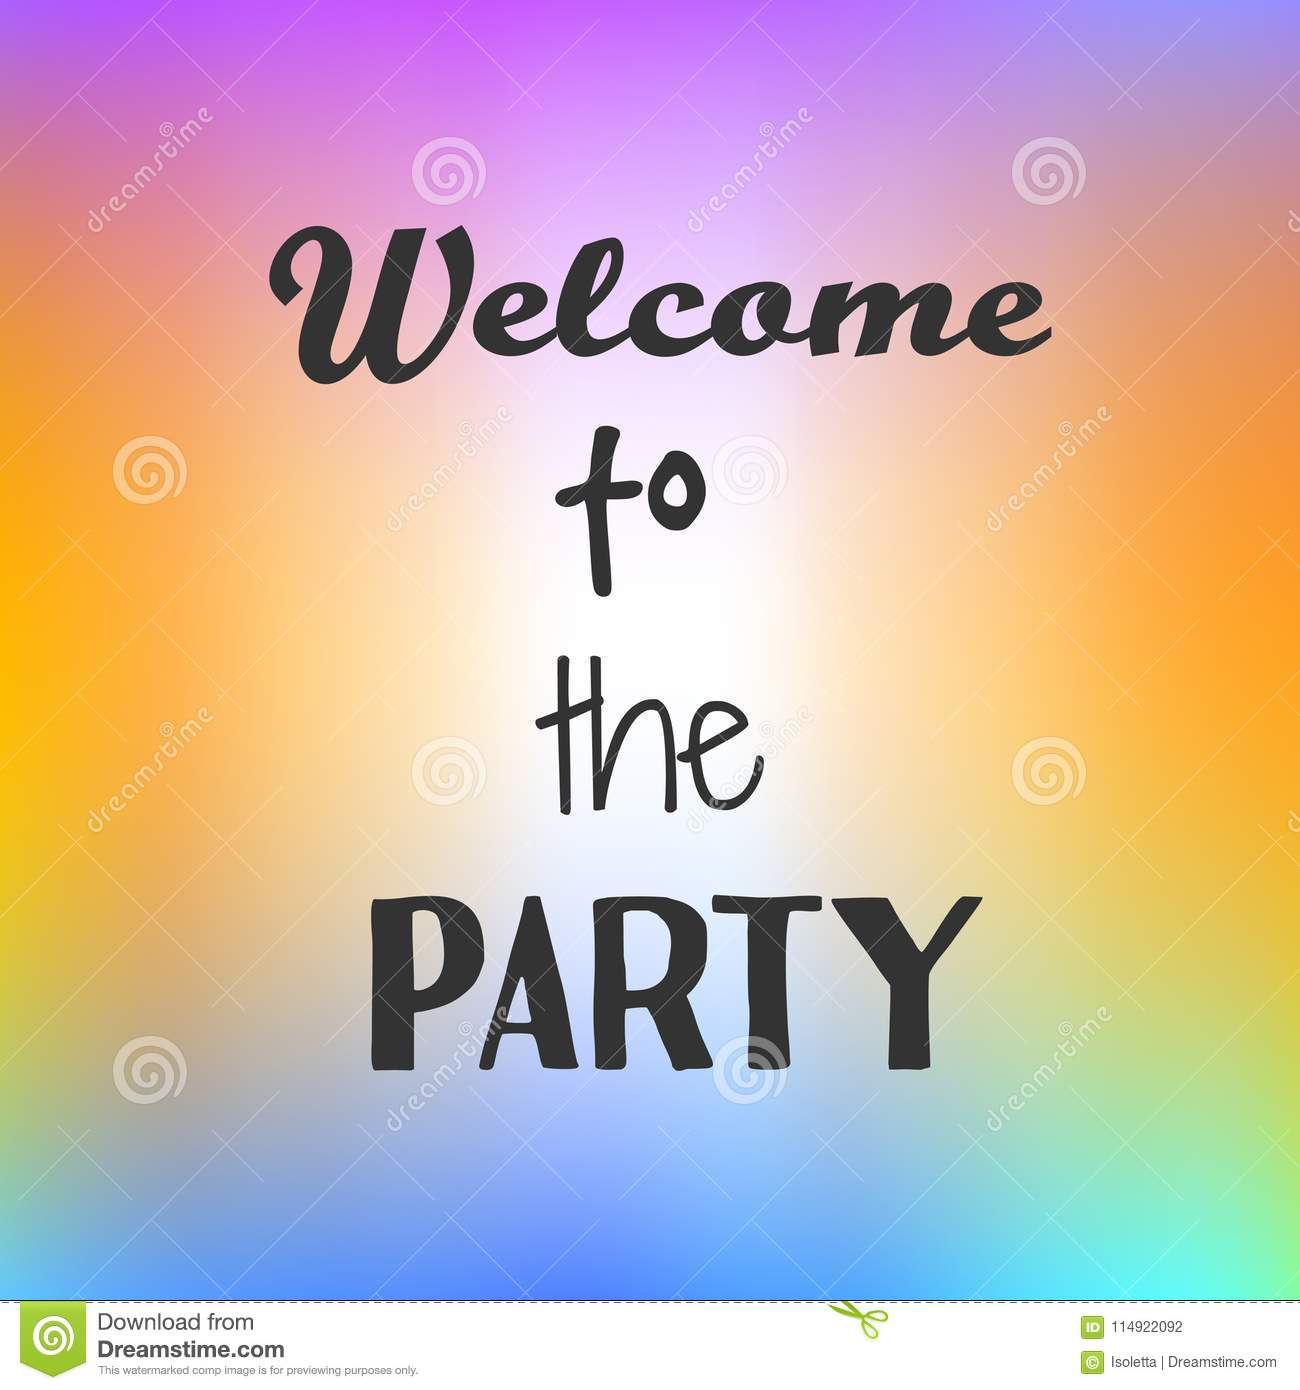 Inspirational quote Welcome to Party on bright background. Motivational poster. Decorative card design.